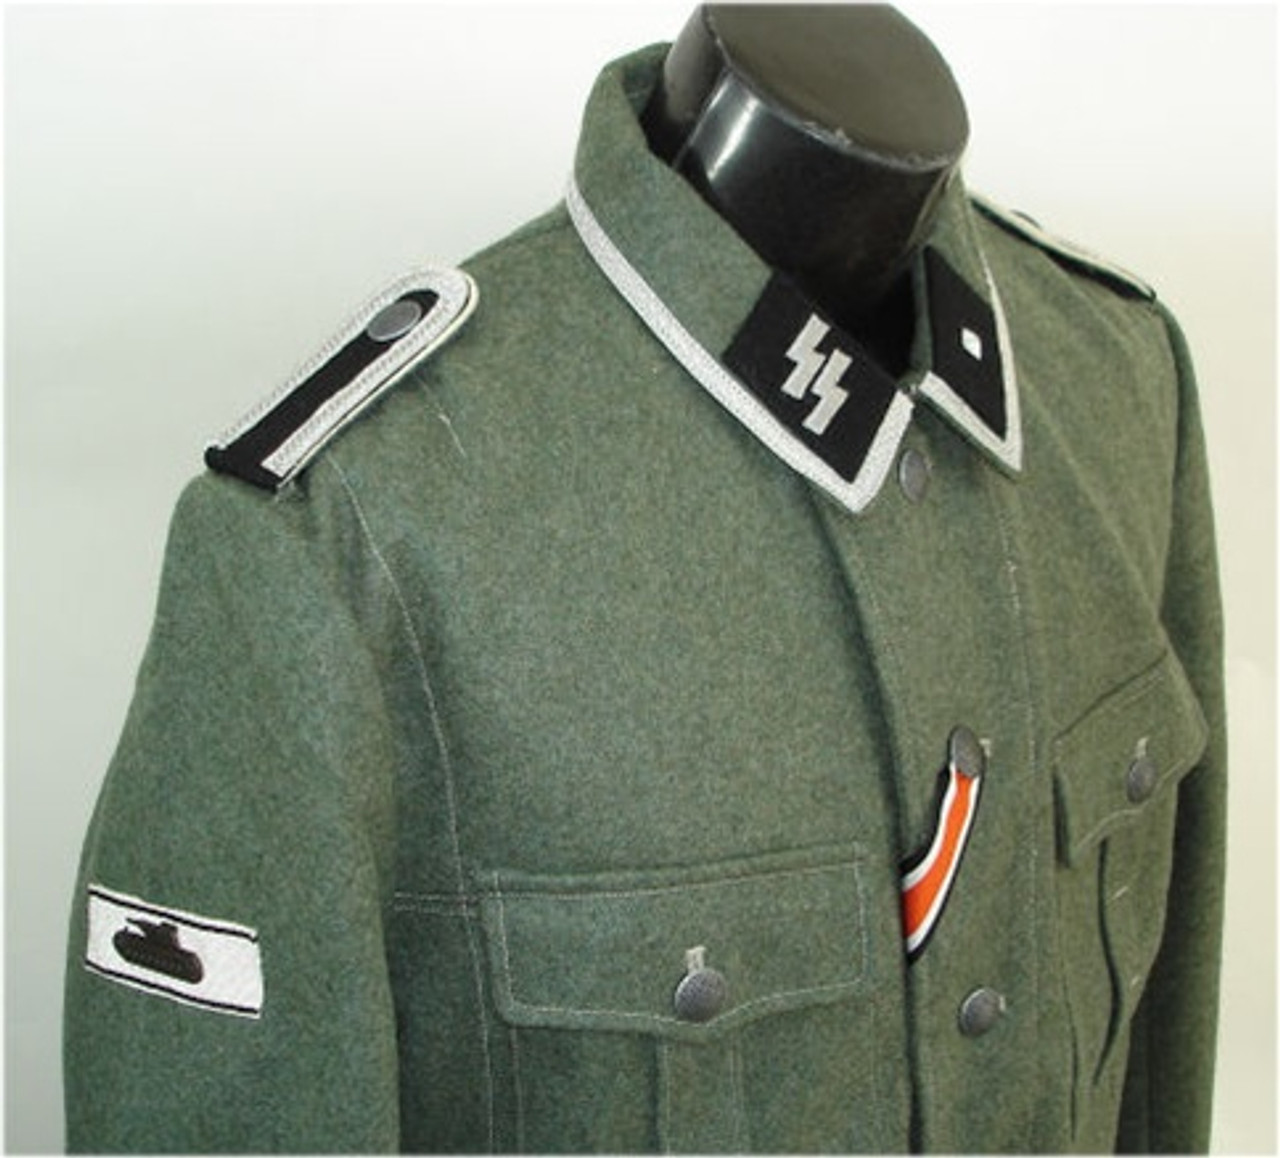 Hessen Antique offers basic sewing service for German uniform insignia. This service is performed on a custom order basis when purchasing a new German tunic from us.